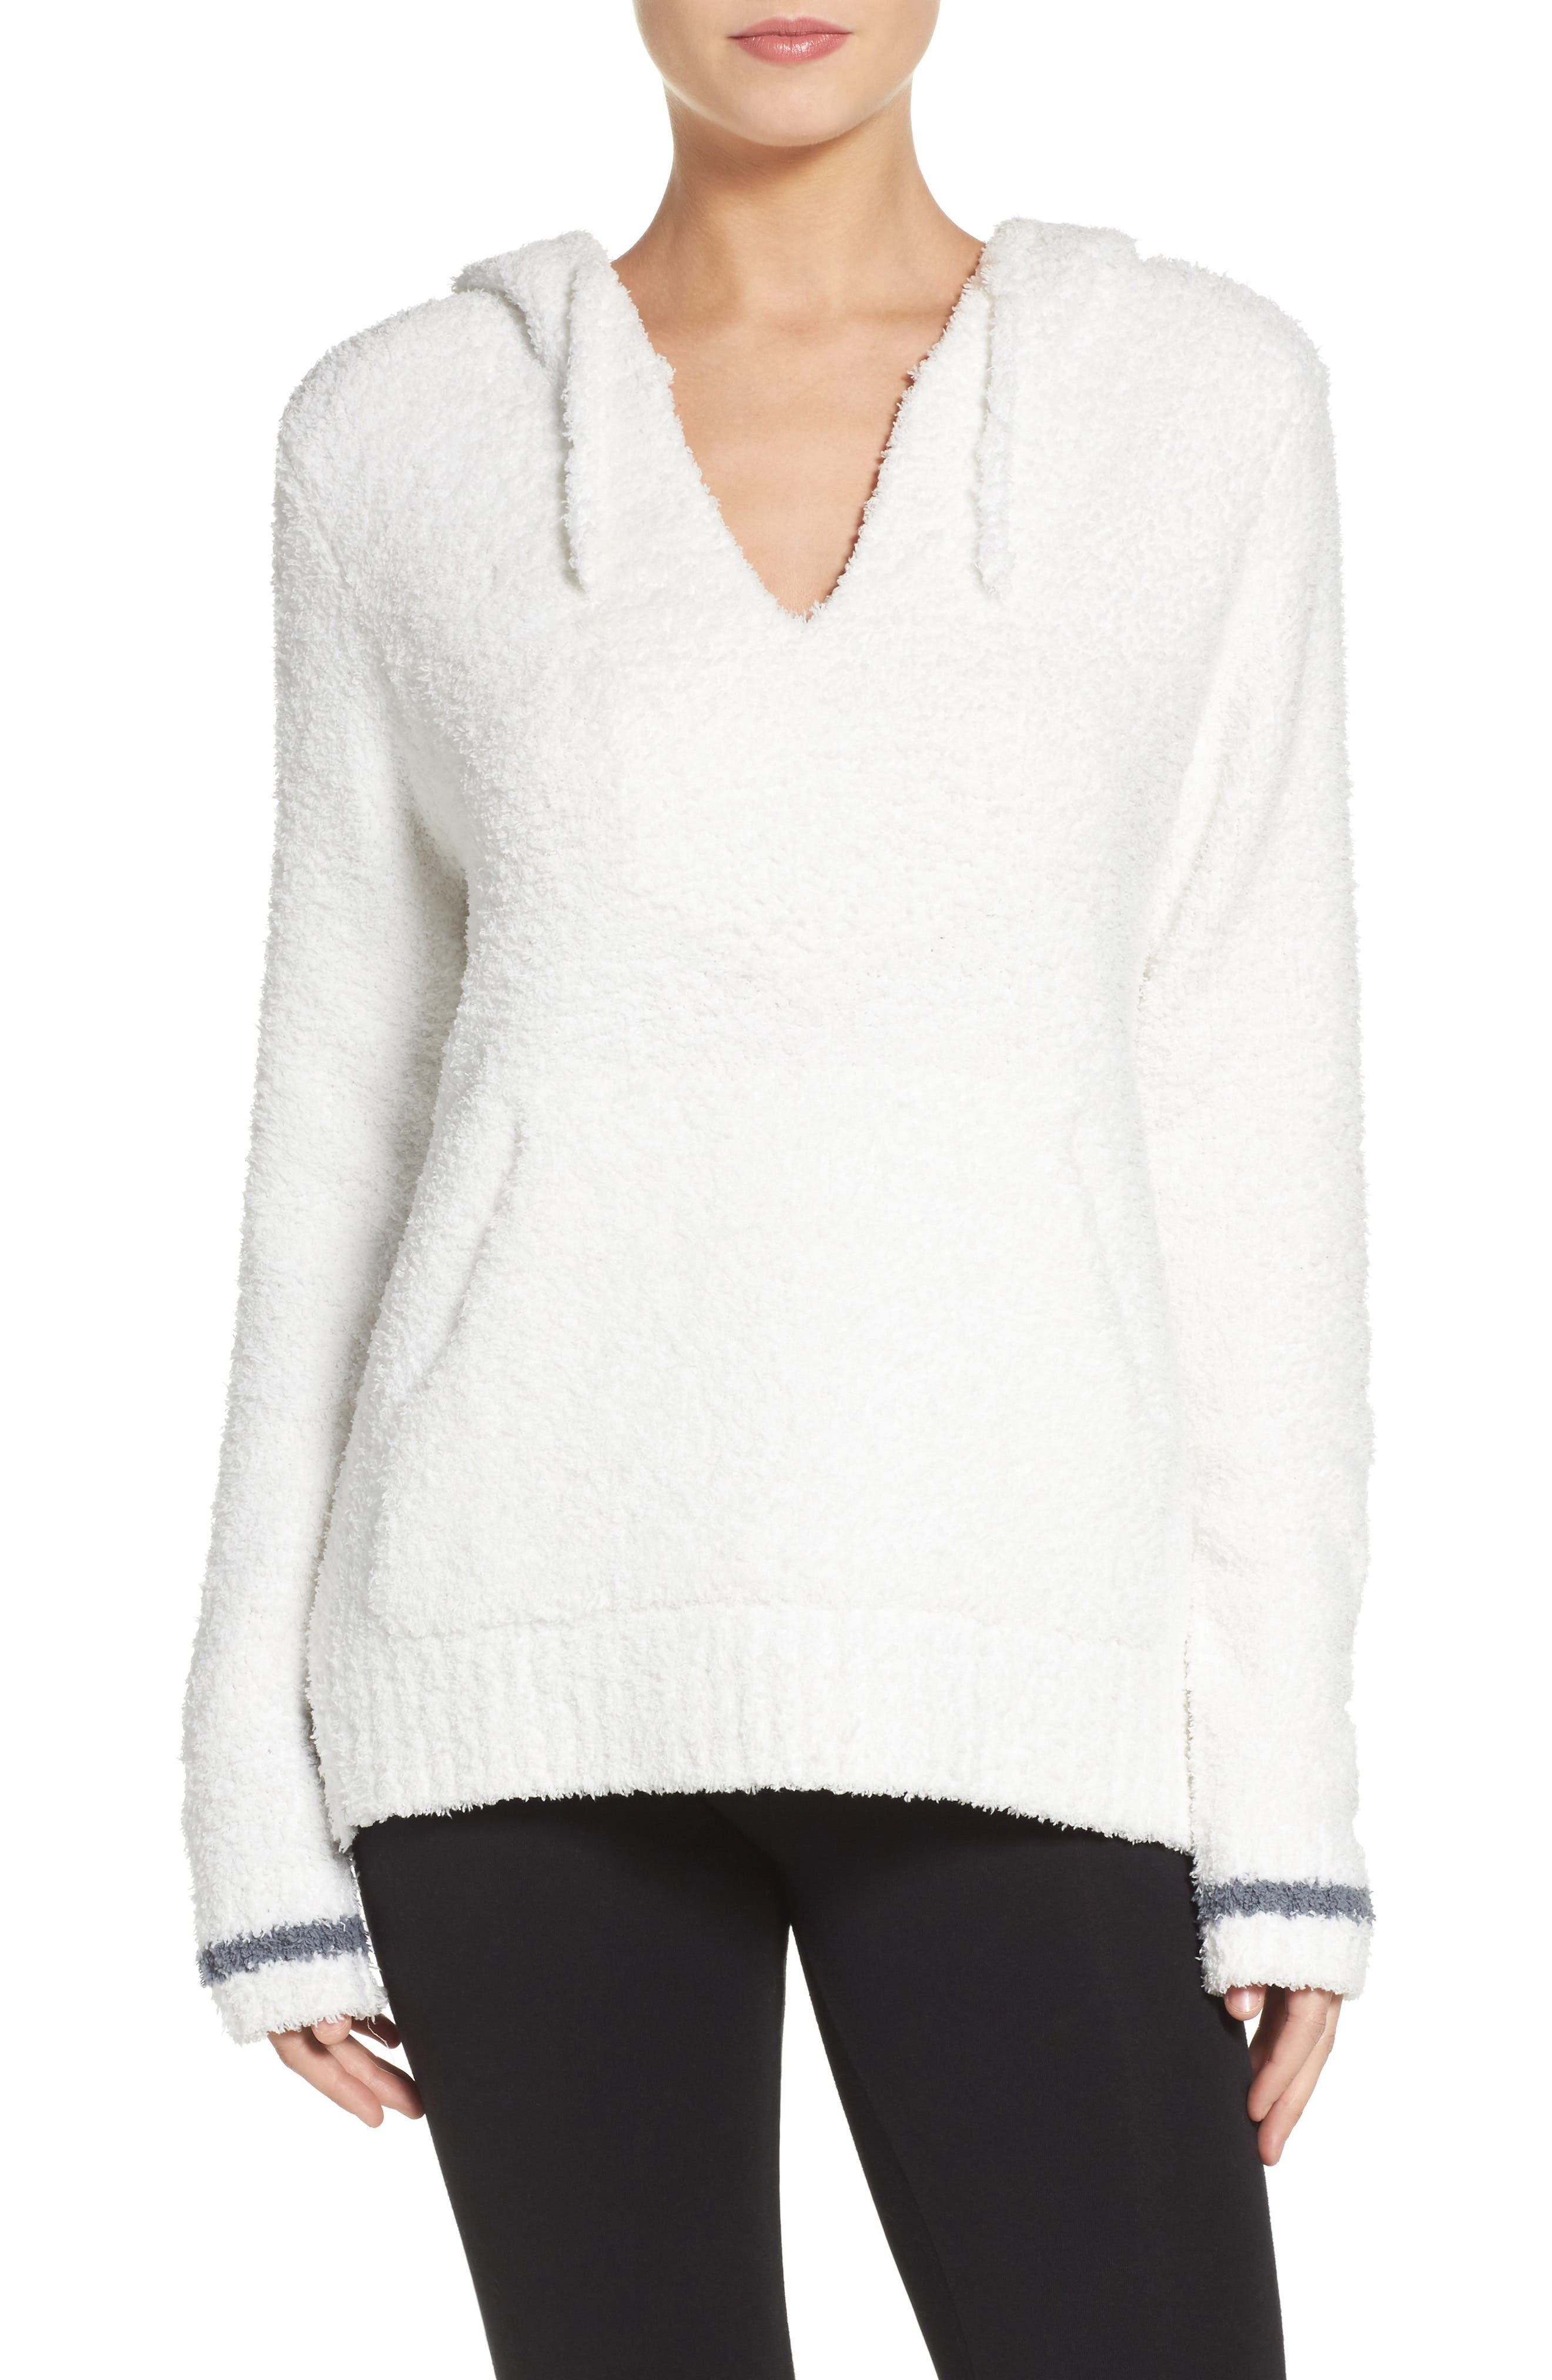 BAREFOOT DREAMS<SUP>®</SUP> Barefoot Dreams Cozychic<sup>®</sup> Baha Lounge Hoodie, Main, color, WHITE/ GRAPHITE STRIPE